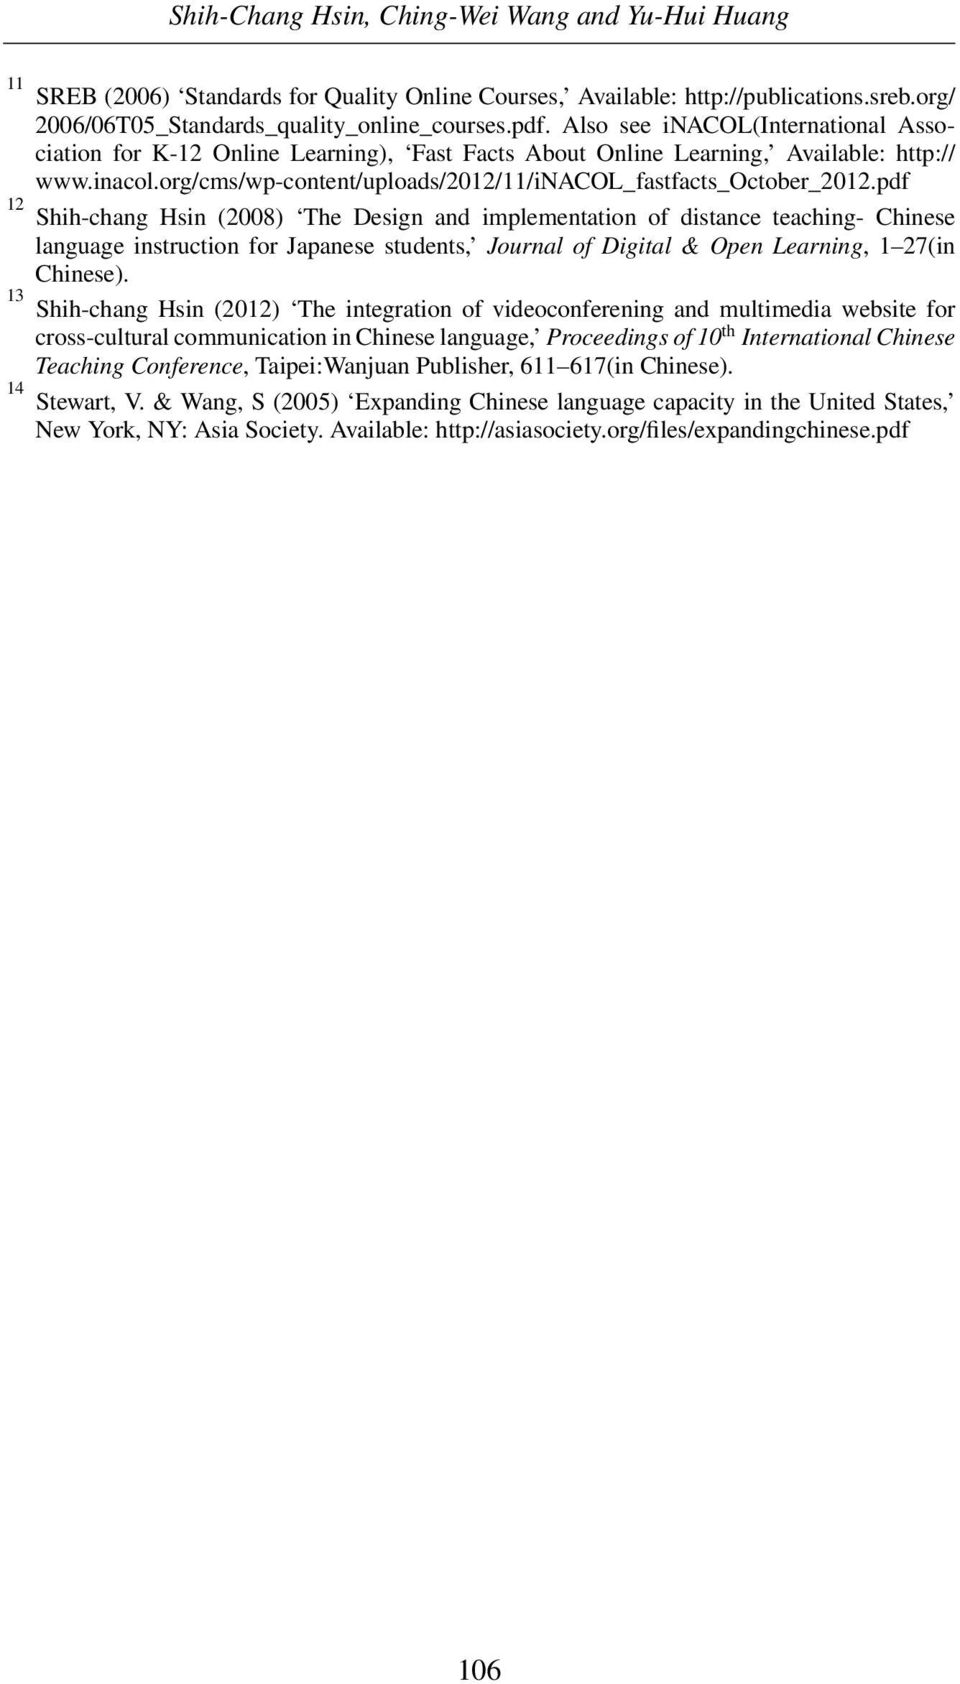 pdf 12 Shih-chang Hsin (2008) The Design and implementation of distance teaching- Chinese language instruction for Japanese students, Journal of Digital & Open Learning, 1 27(in Chinese).